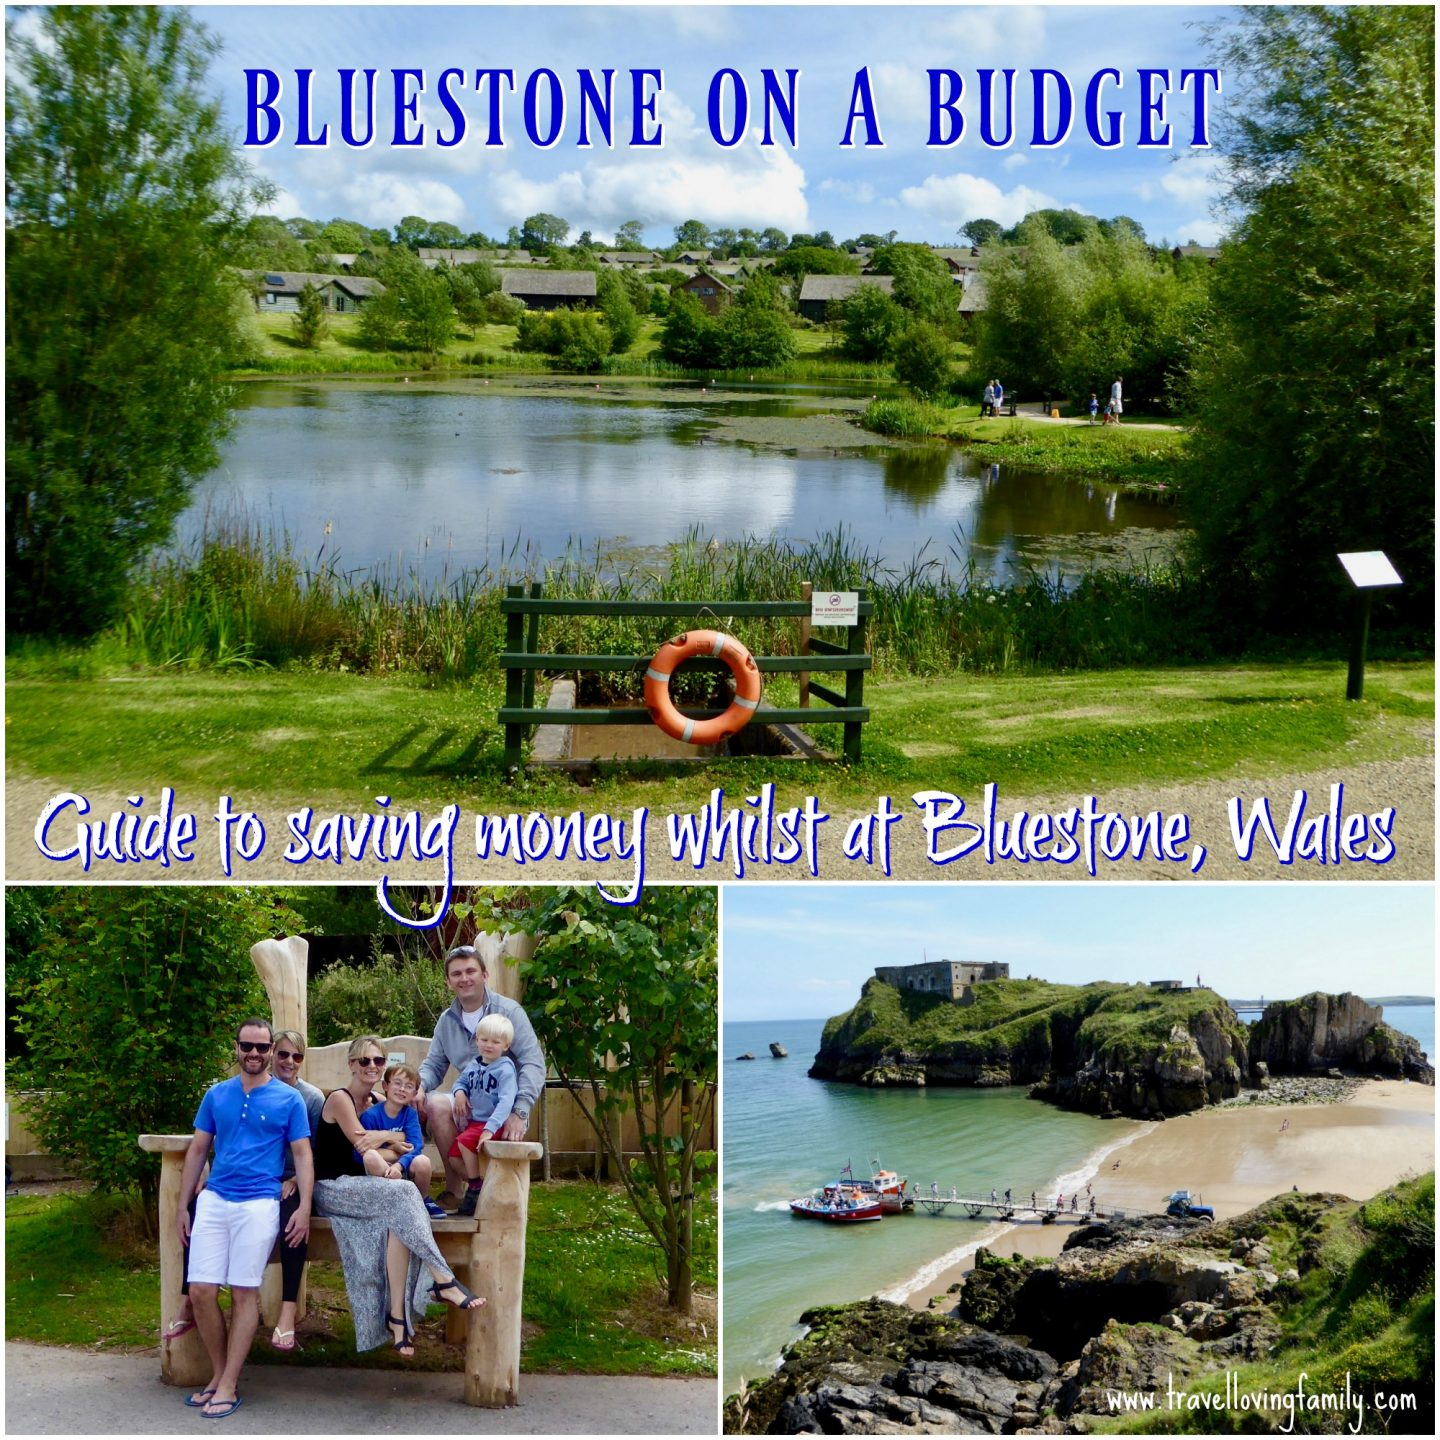 202577ec8d3 Bluestone on a budget. Guide to saving money whilst at Bluestone